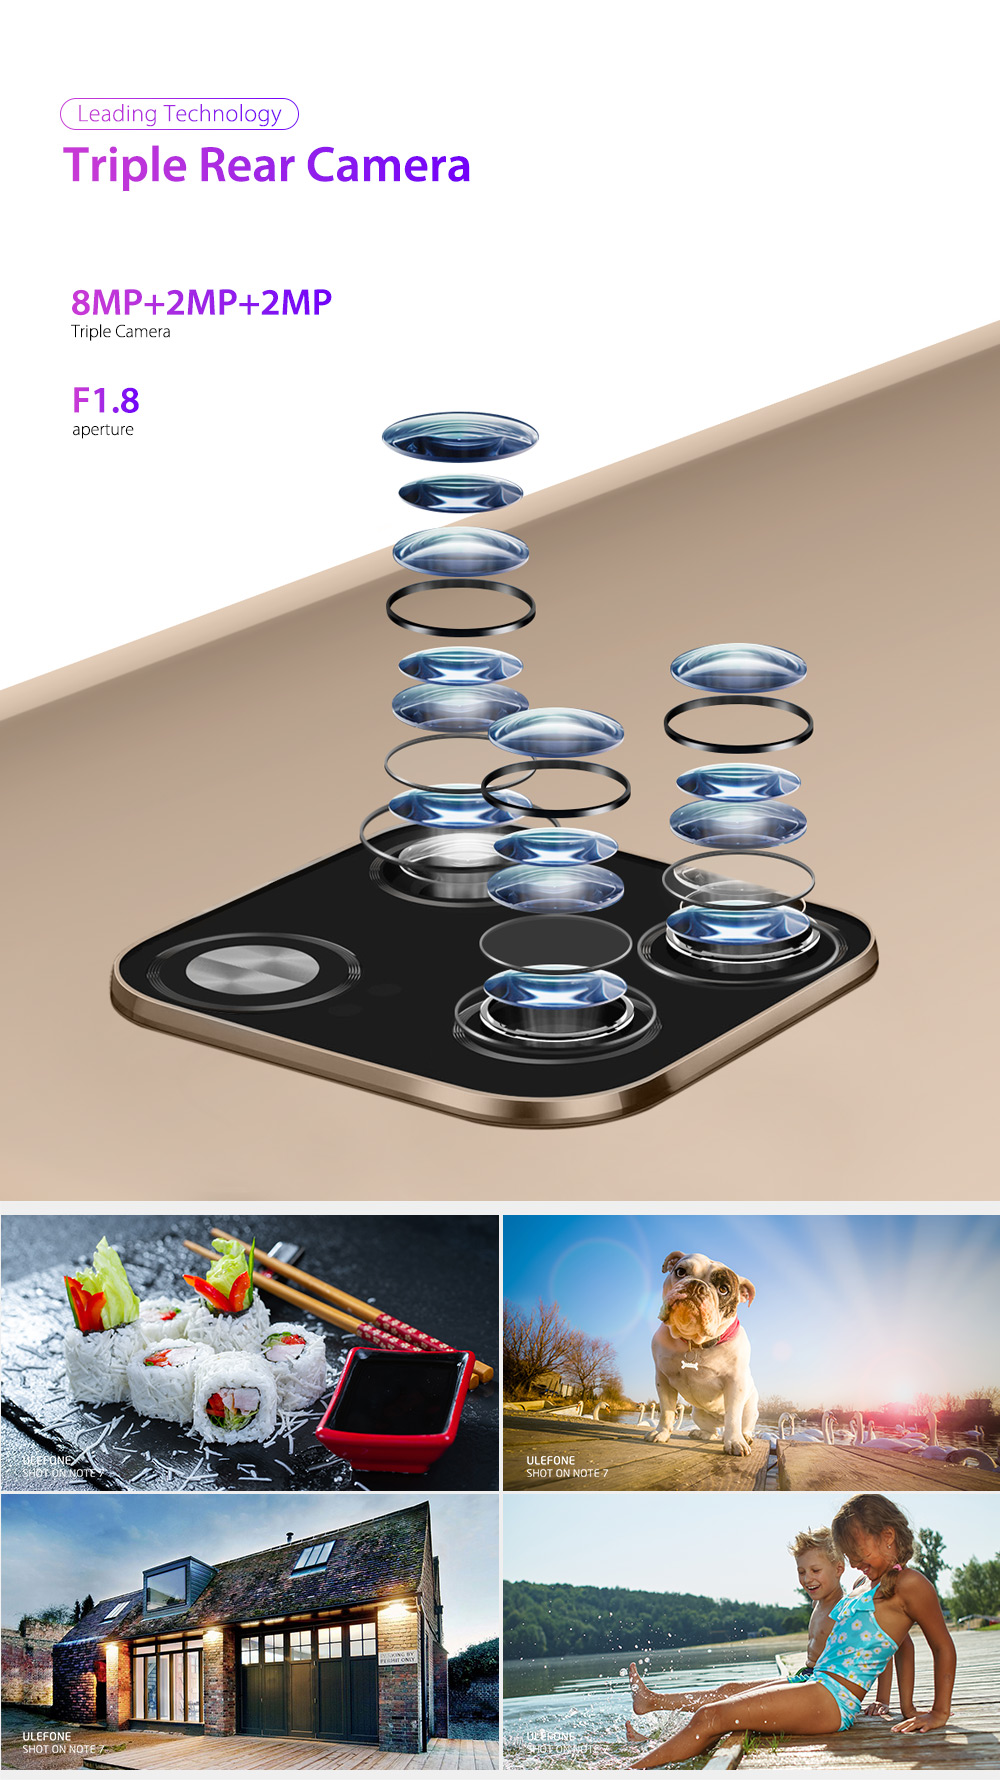 HTB1Ds7XRMHqK1RjSZFPq6AwapXab Ulefone Note 7 Smartphone 3500mAh 19:9 Quad Core 6.1inch  Waterdrop Screen 16GB ROM Mobile phone WCDMA Cellphone  Android9.0